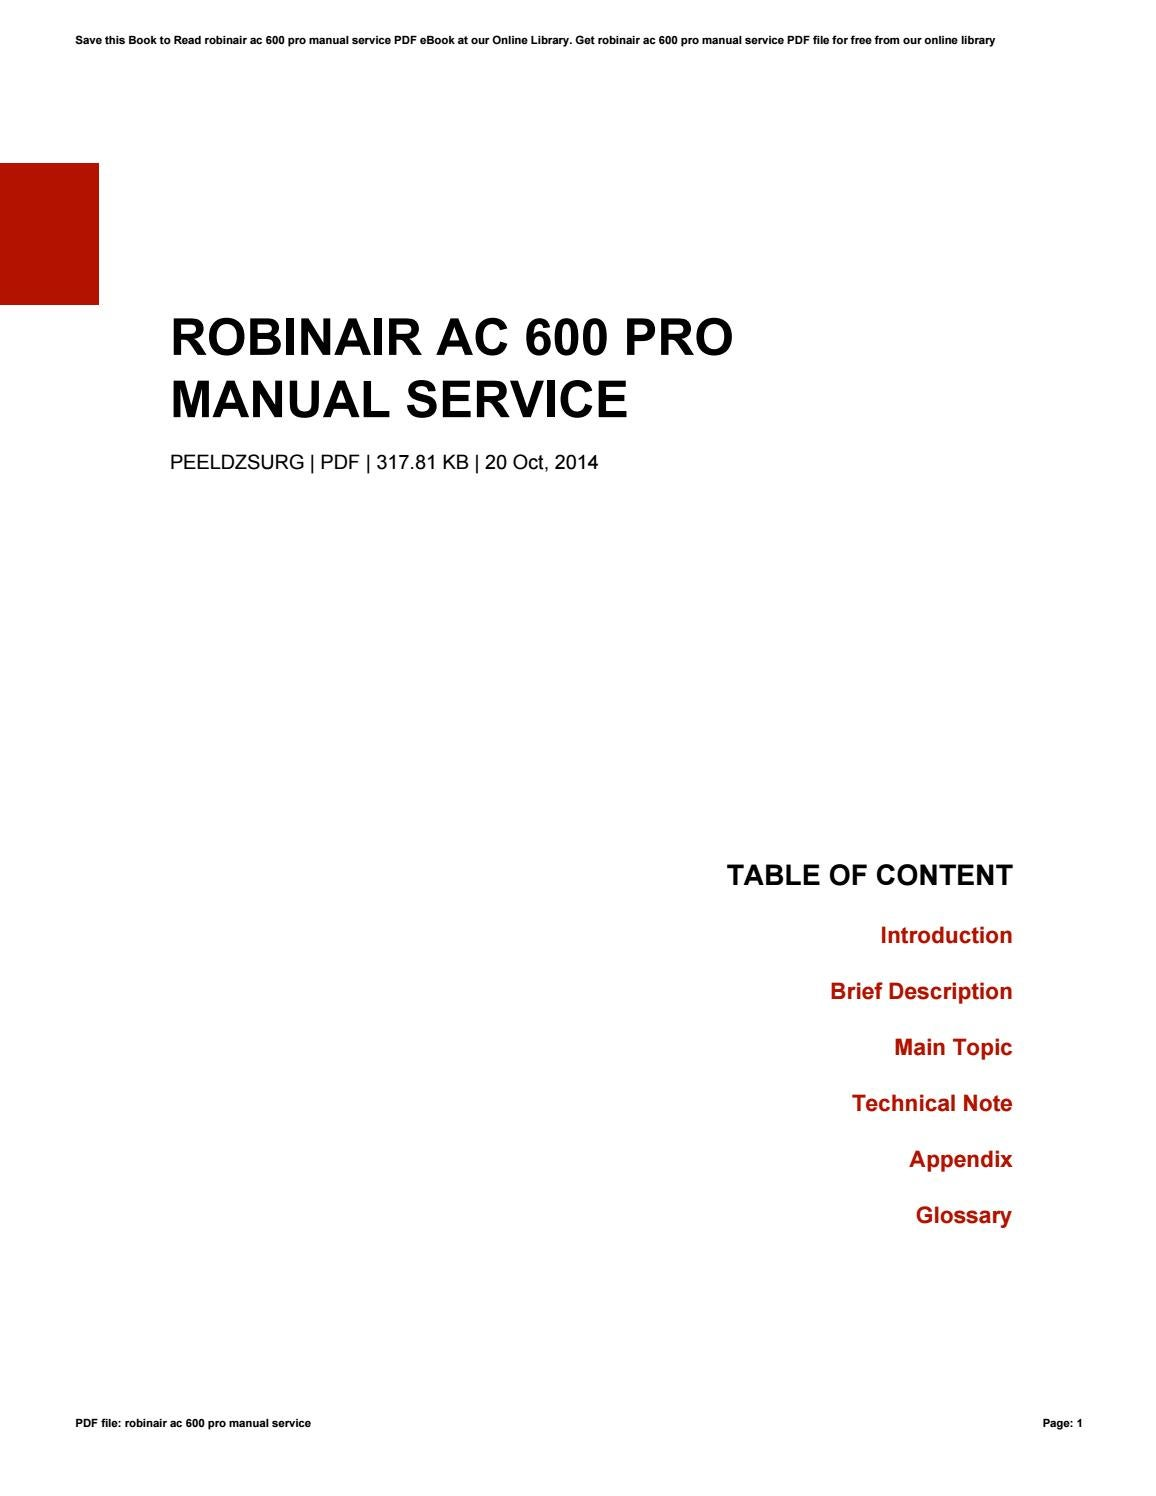 Robinair ac 600 pro manual service by